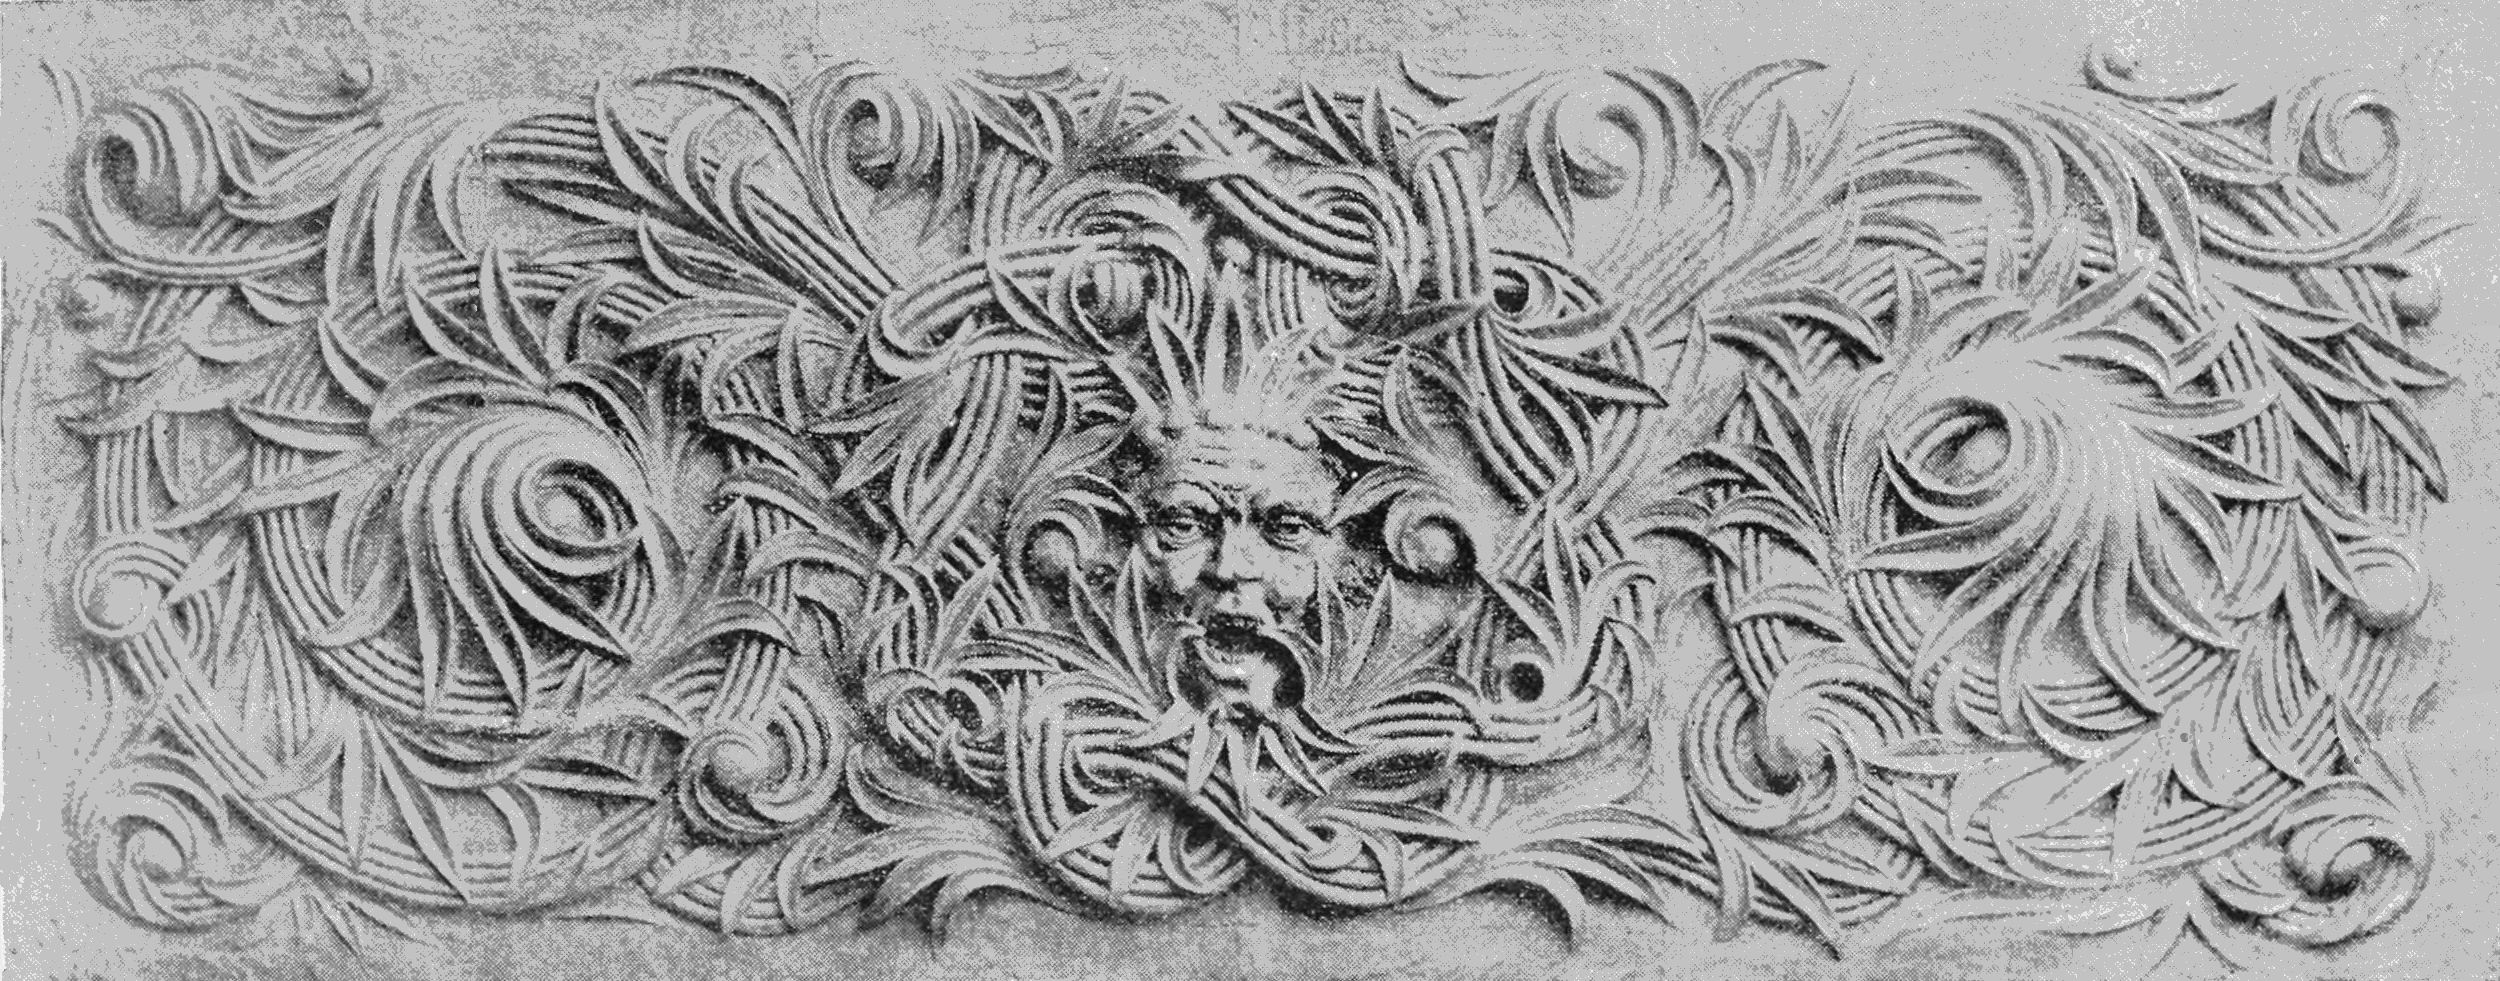 PSM V40 D331 Terracotta architectural decoration.jpg